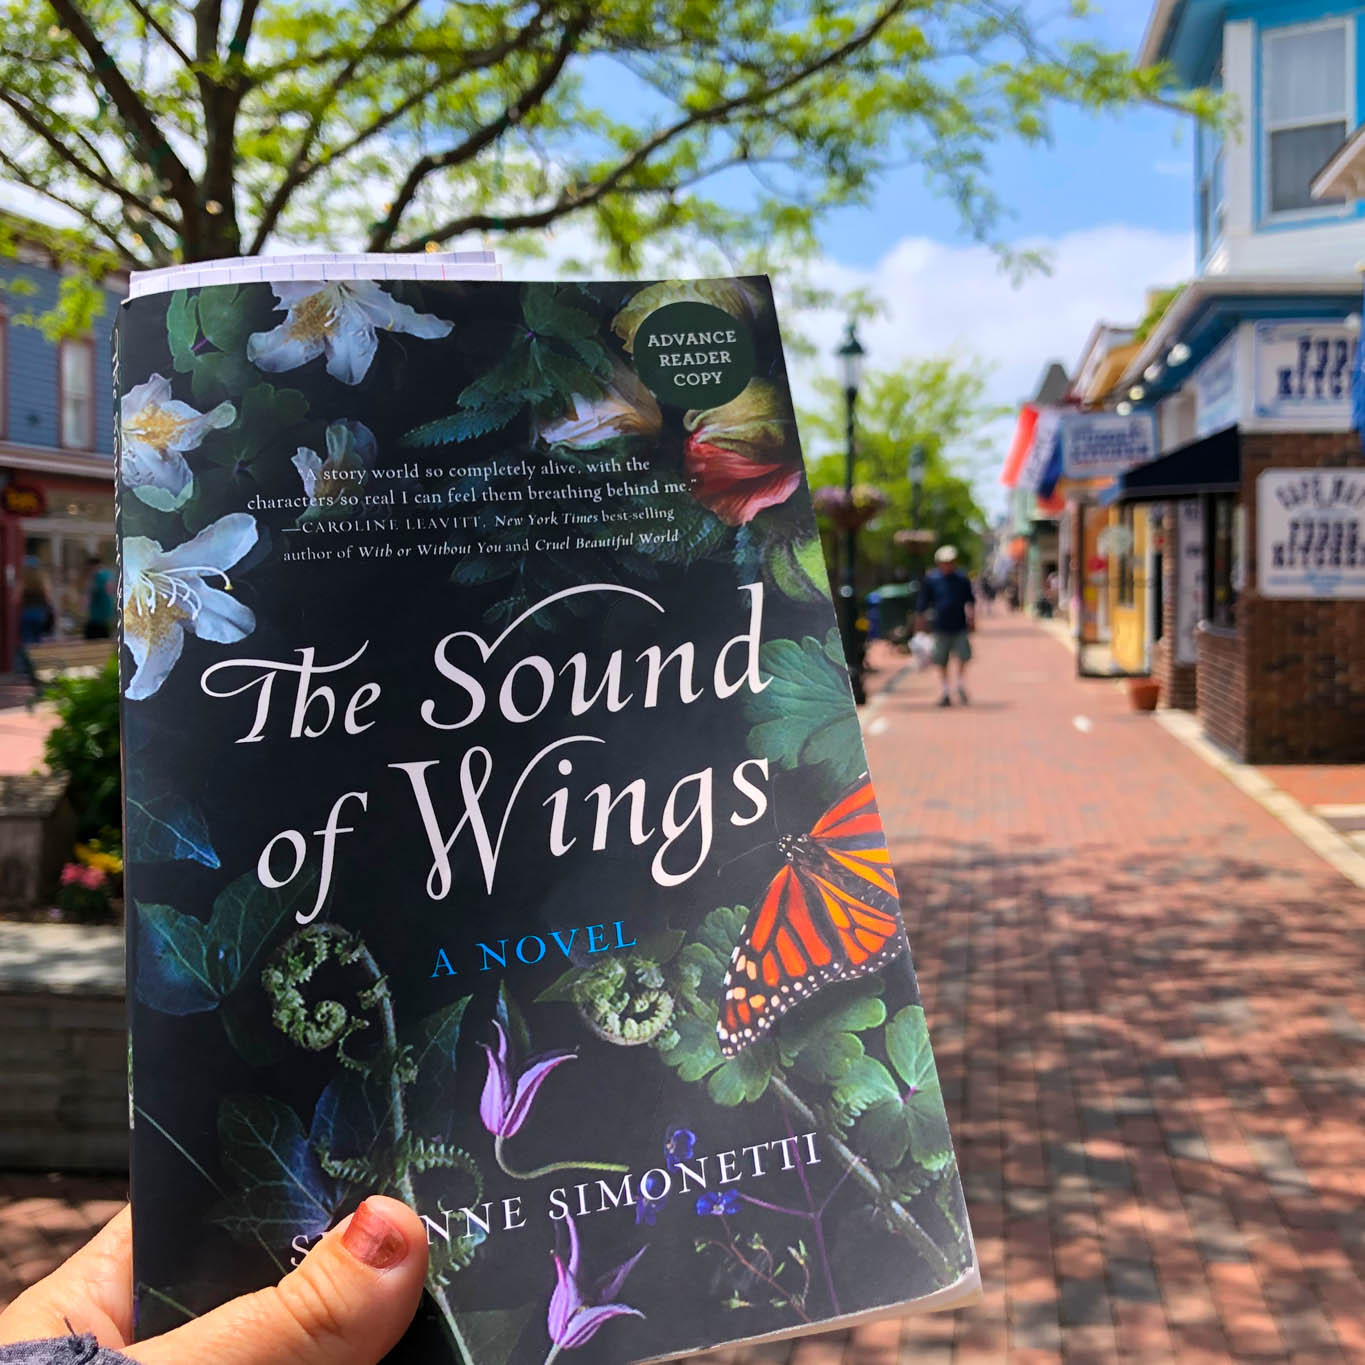 On The Washington Street Mall with The Sound Of Wings